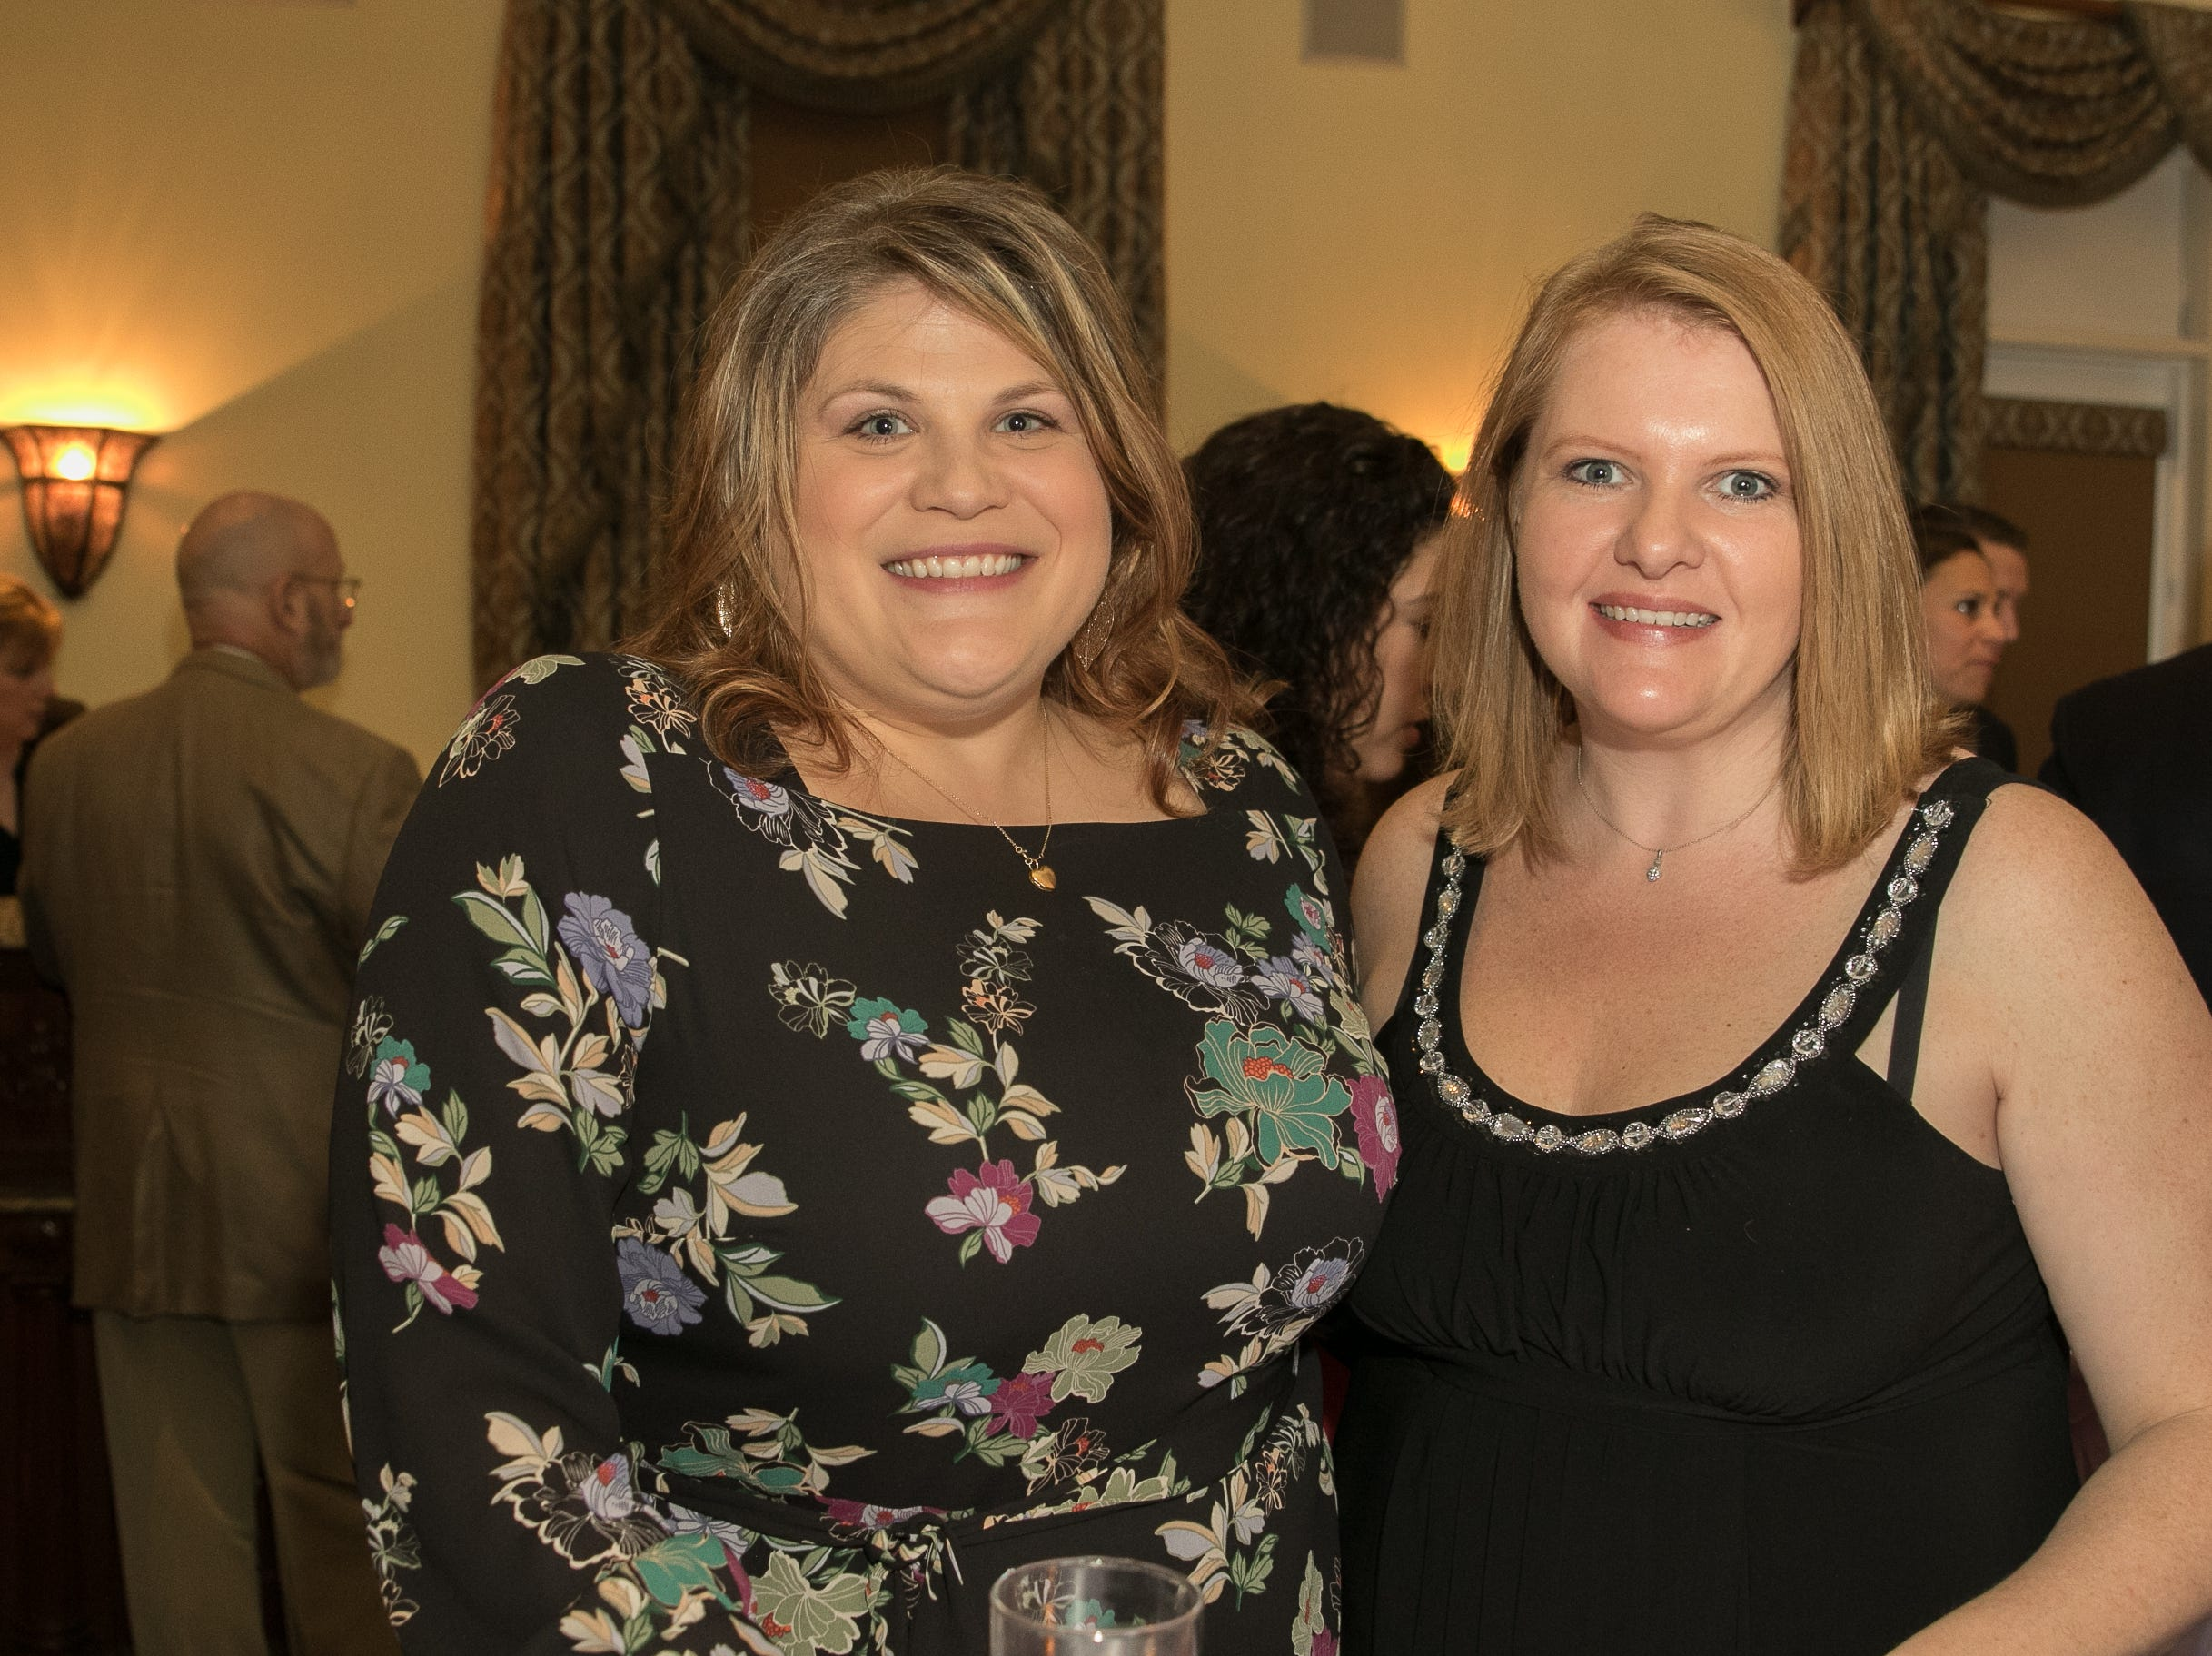 Melissa Rhodes, Kerry Webb, Midland Park Family Denistry- Bronze Sponsers. The Emmanuel Cancer Foundation 9th Annual Bash at The Brick House. 03/15/2019